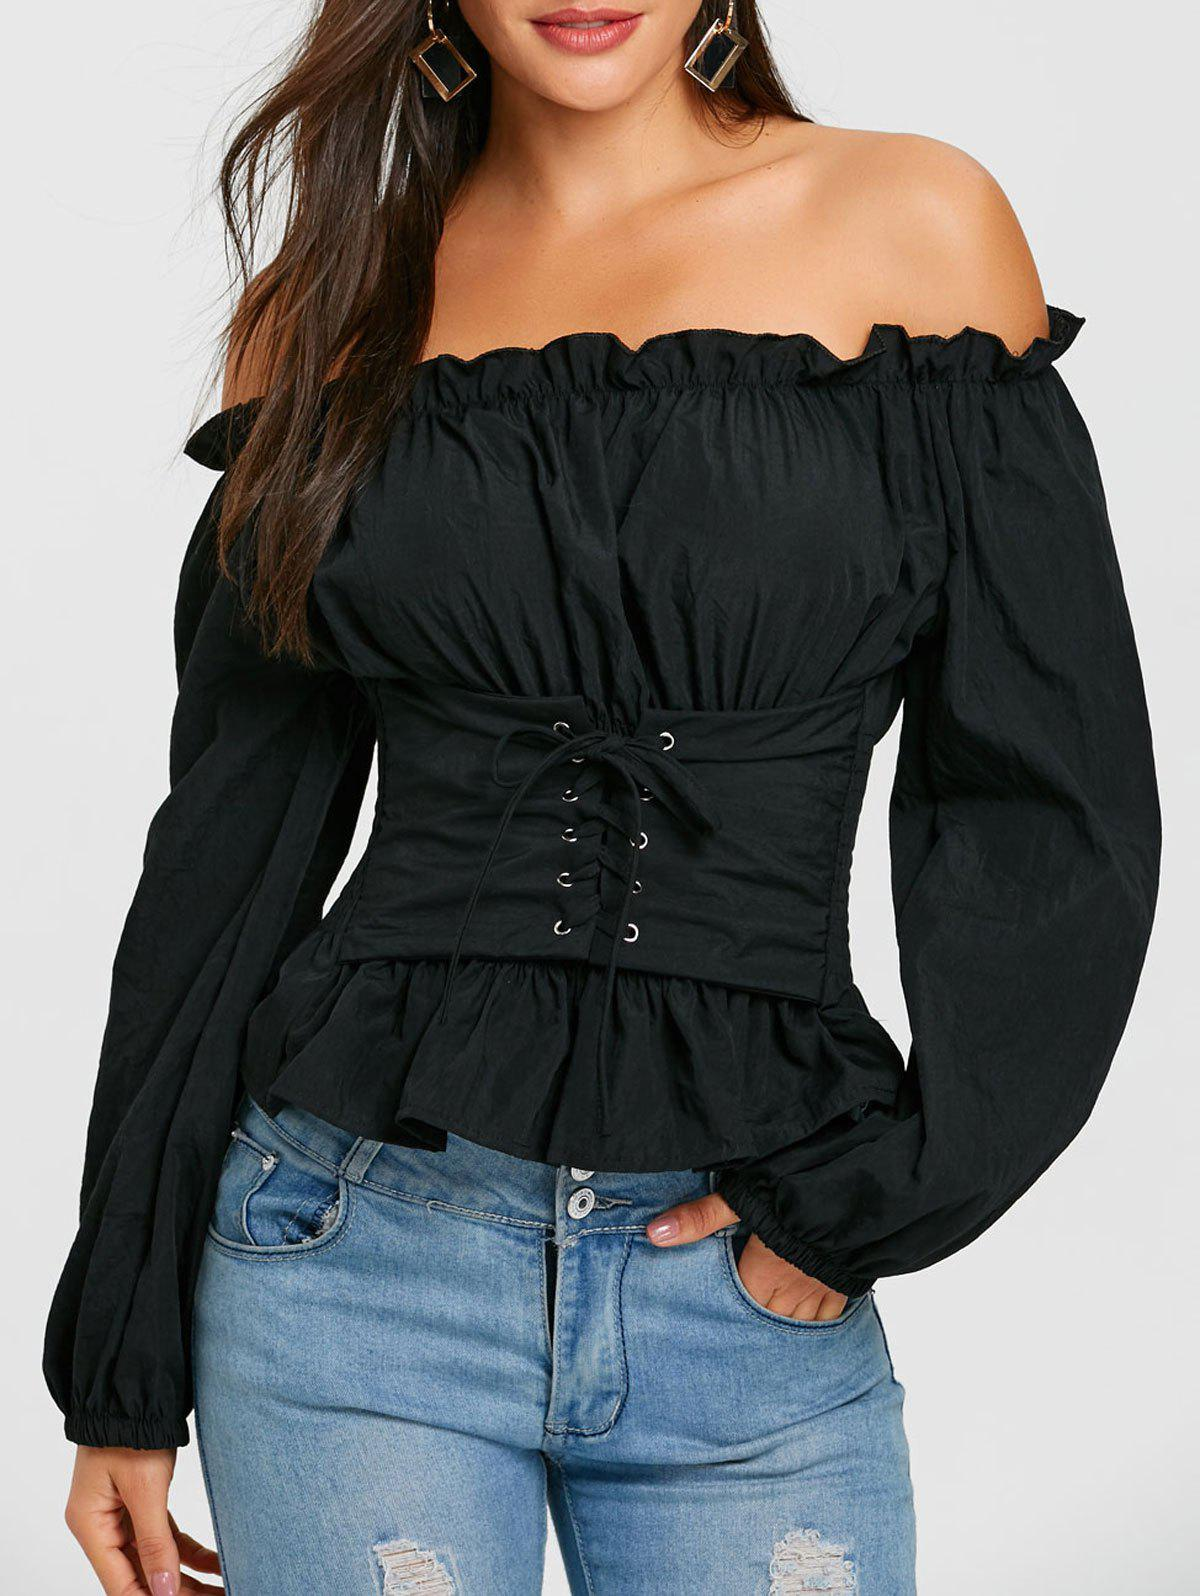 Lace Up Smocked Off The Shoulder Blouse - BLACK ONE SIZE